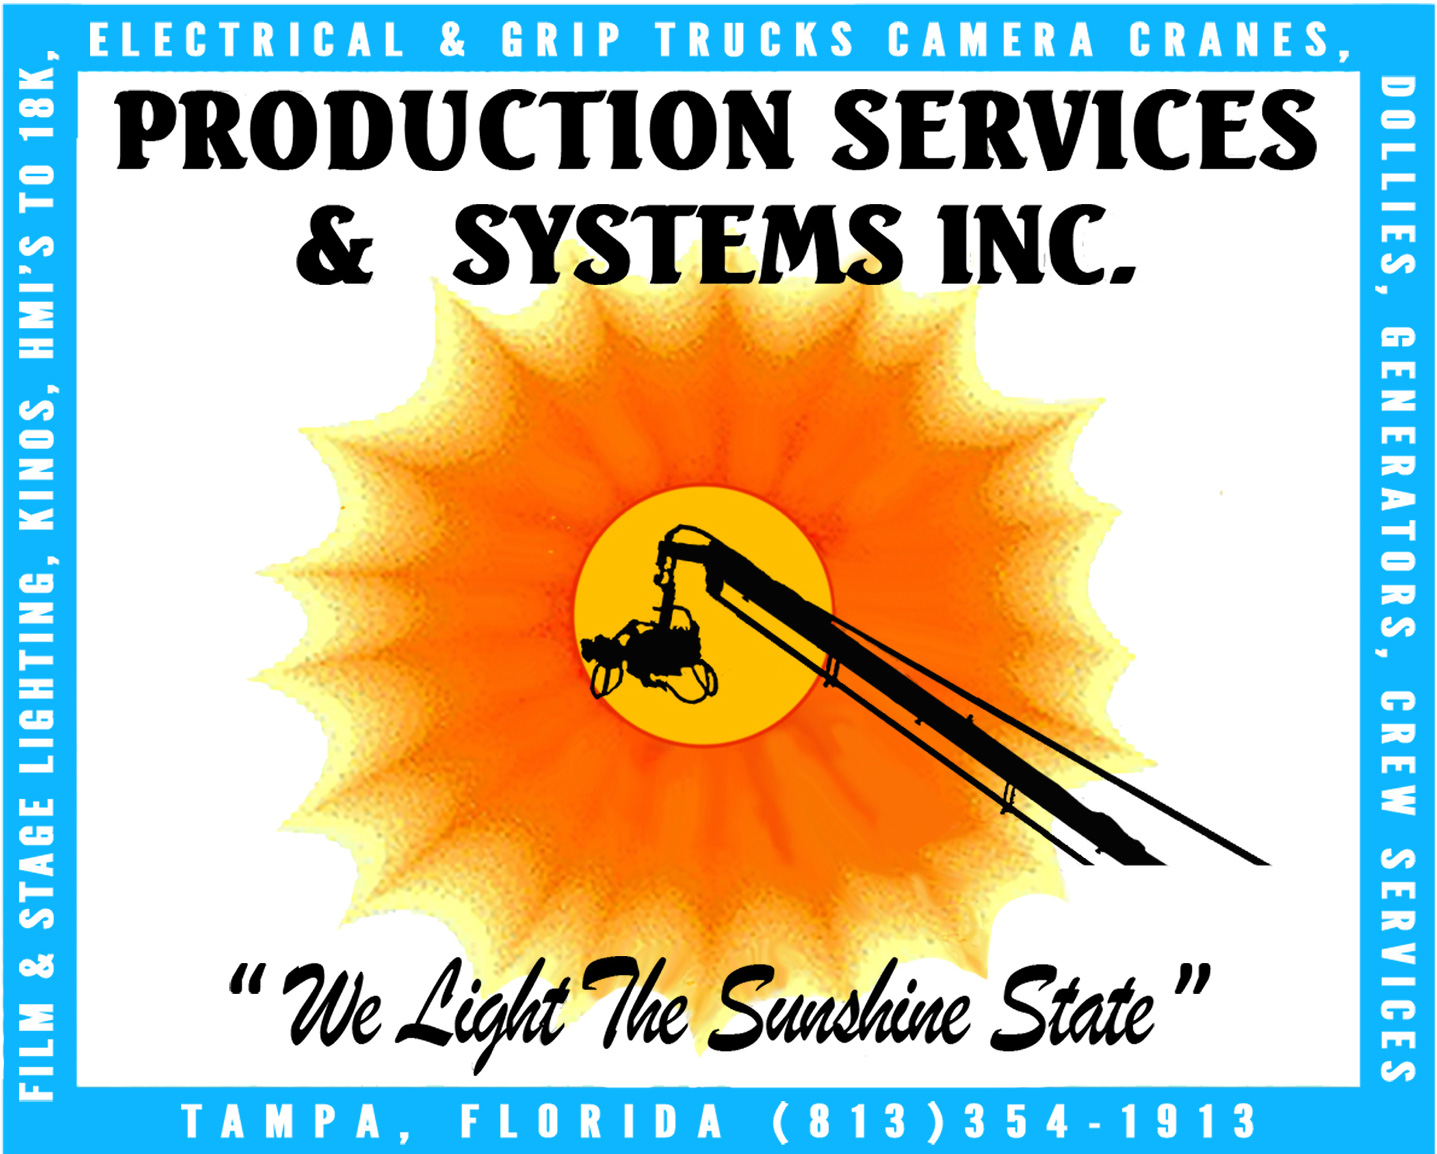 Production Services and Systems